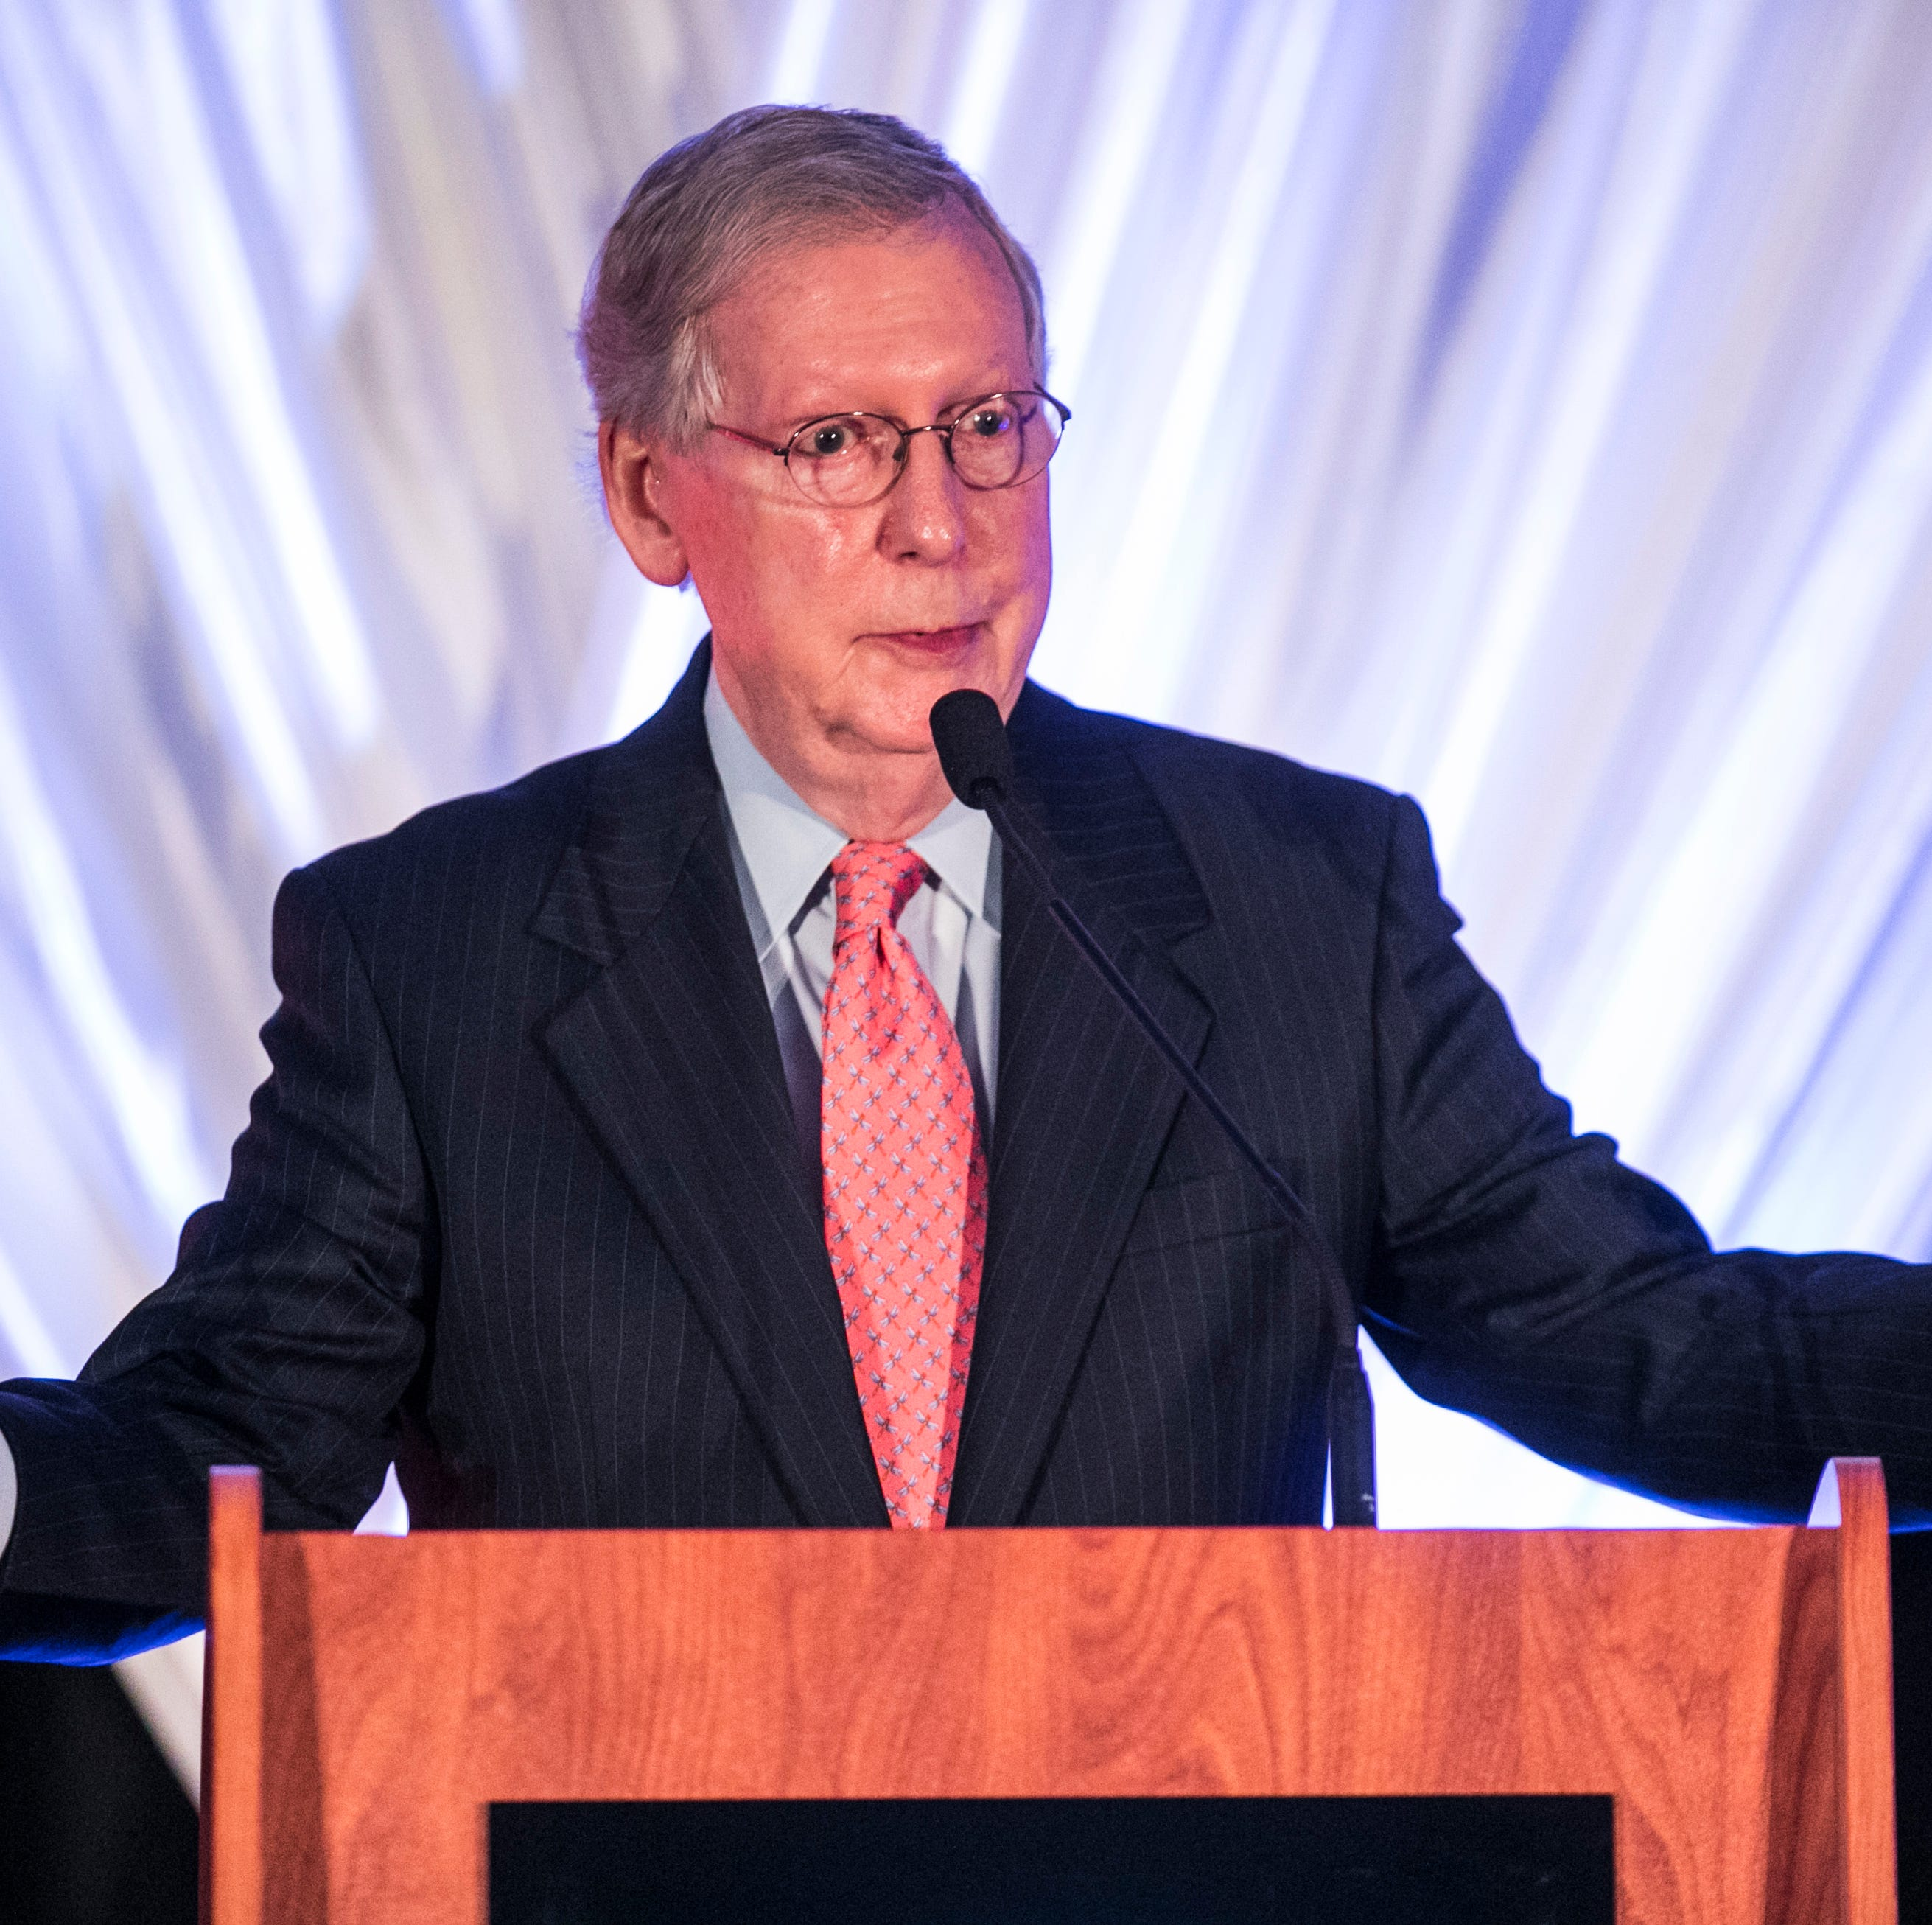 McConnell: Hemp legislation will give Kentucky farmers a new cash crop